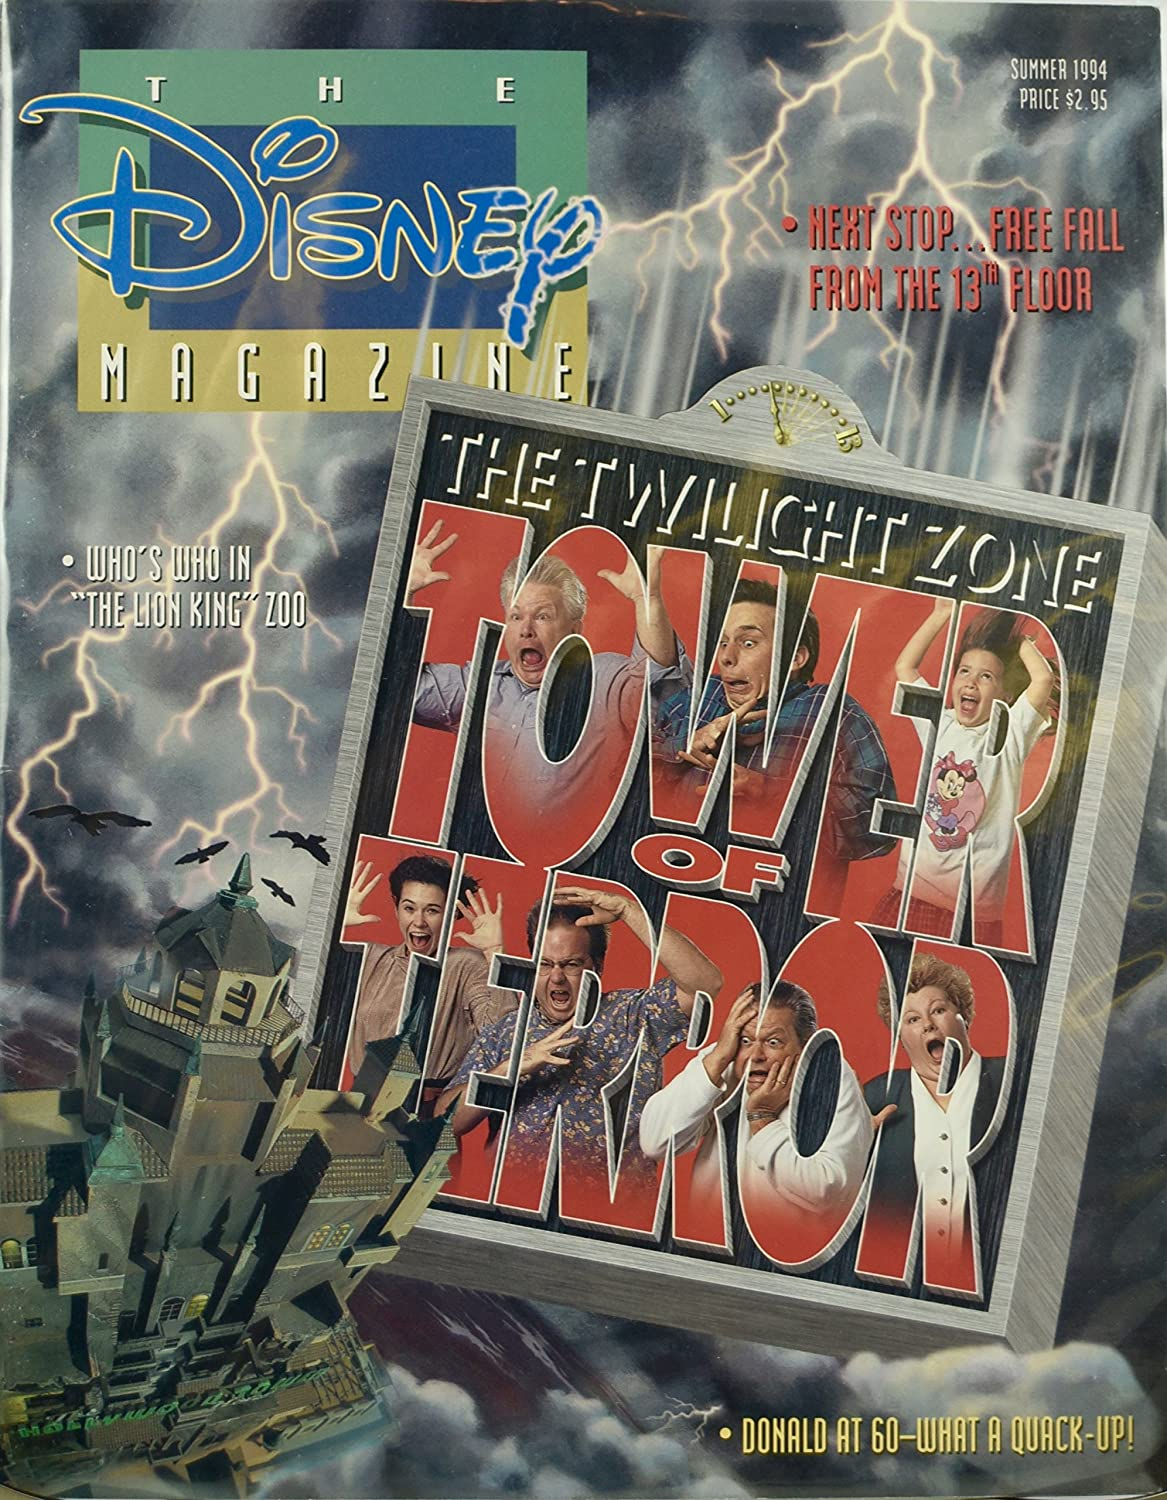 1994 - Summer - Vol. 29 / No. 3 - The Disney Magazine - The Twilight Zone : Tower of Terror - Donald Duck at 60 - OOP - New - Mint - Rare - Collectible